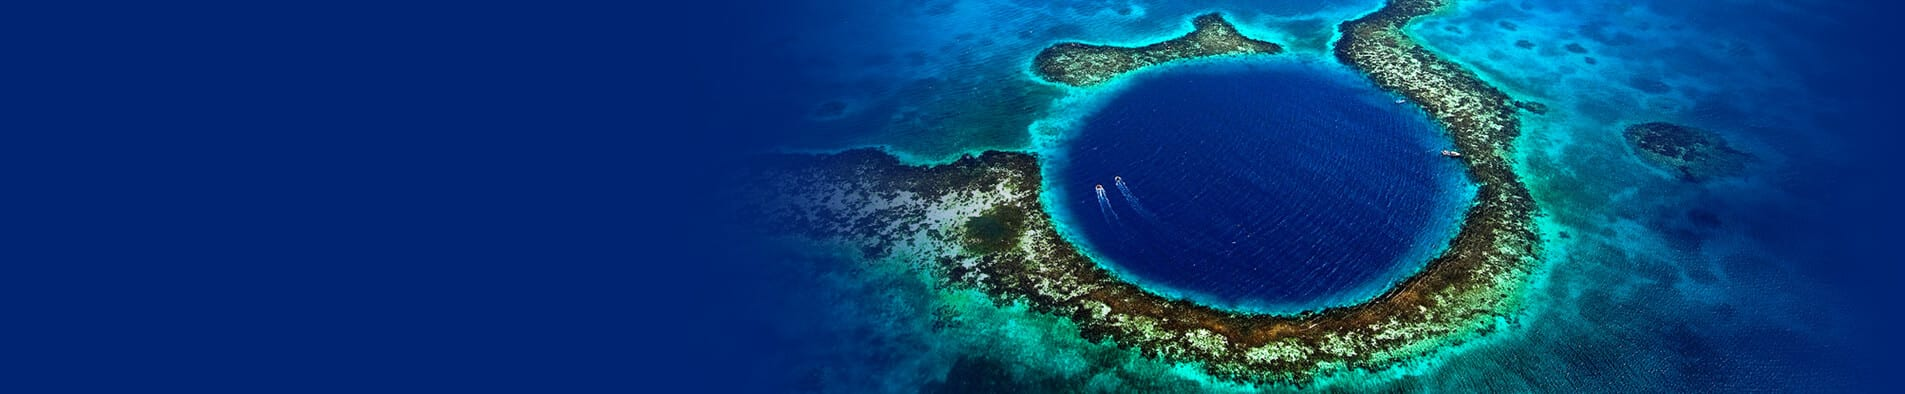 belize header